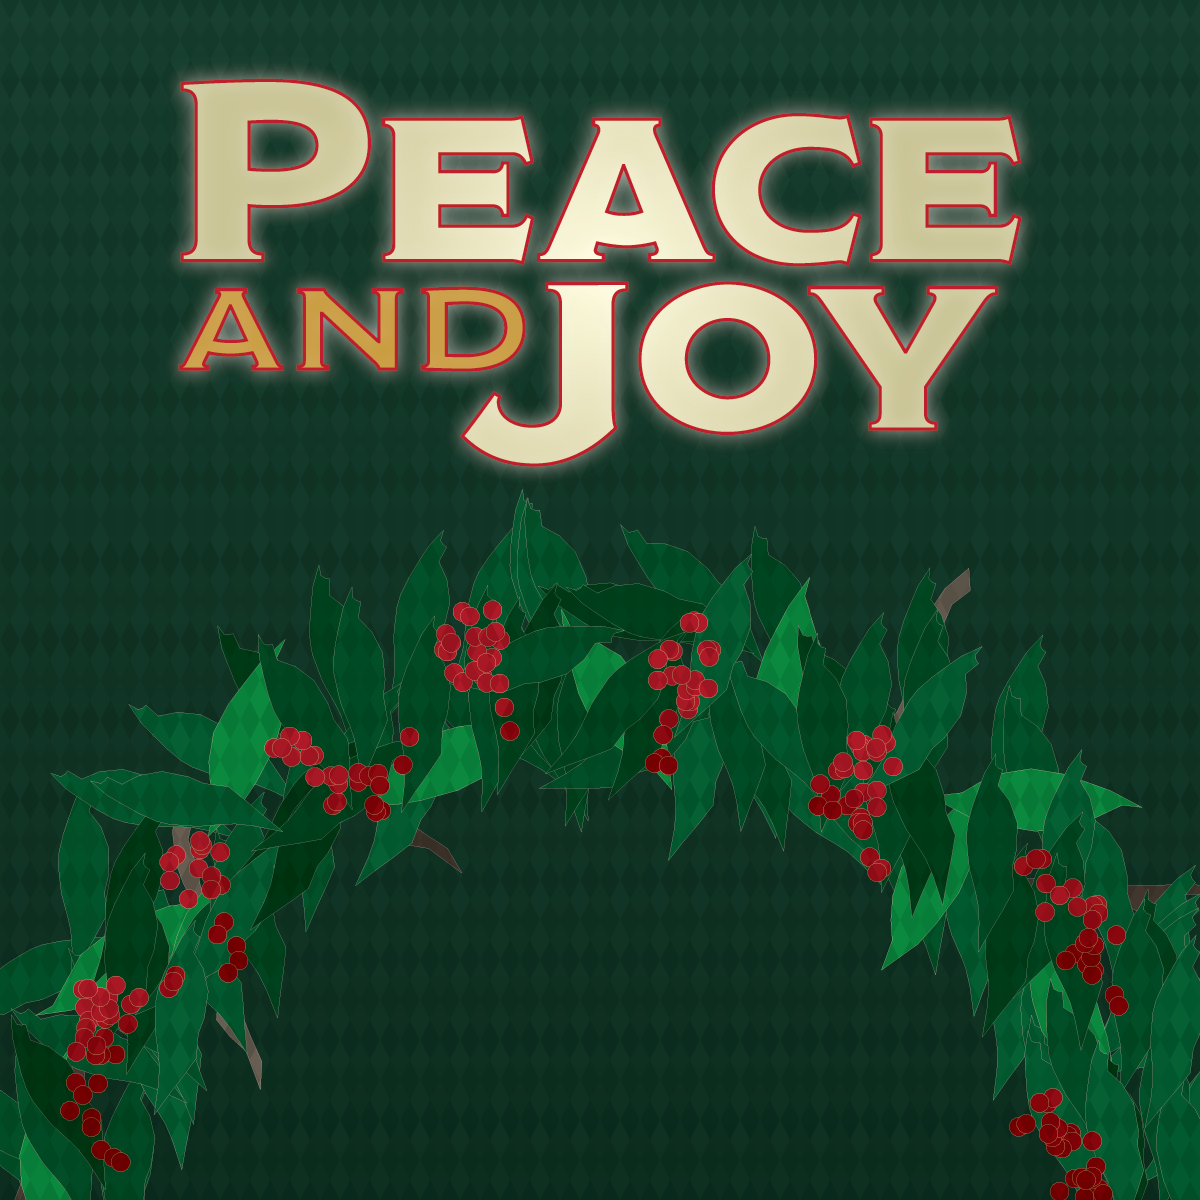 Peace and Joy concert poster